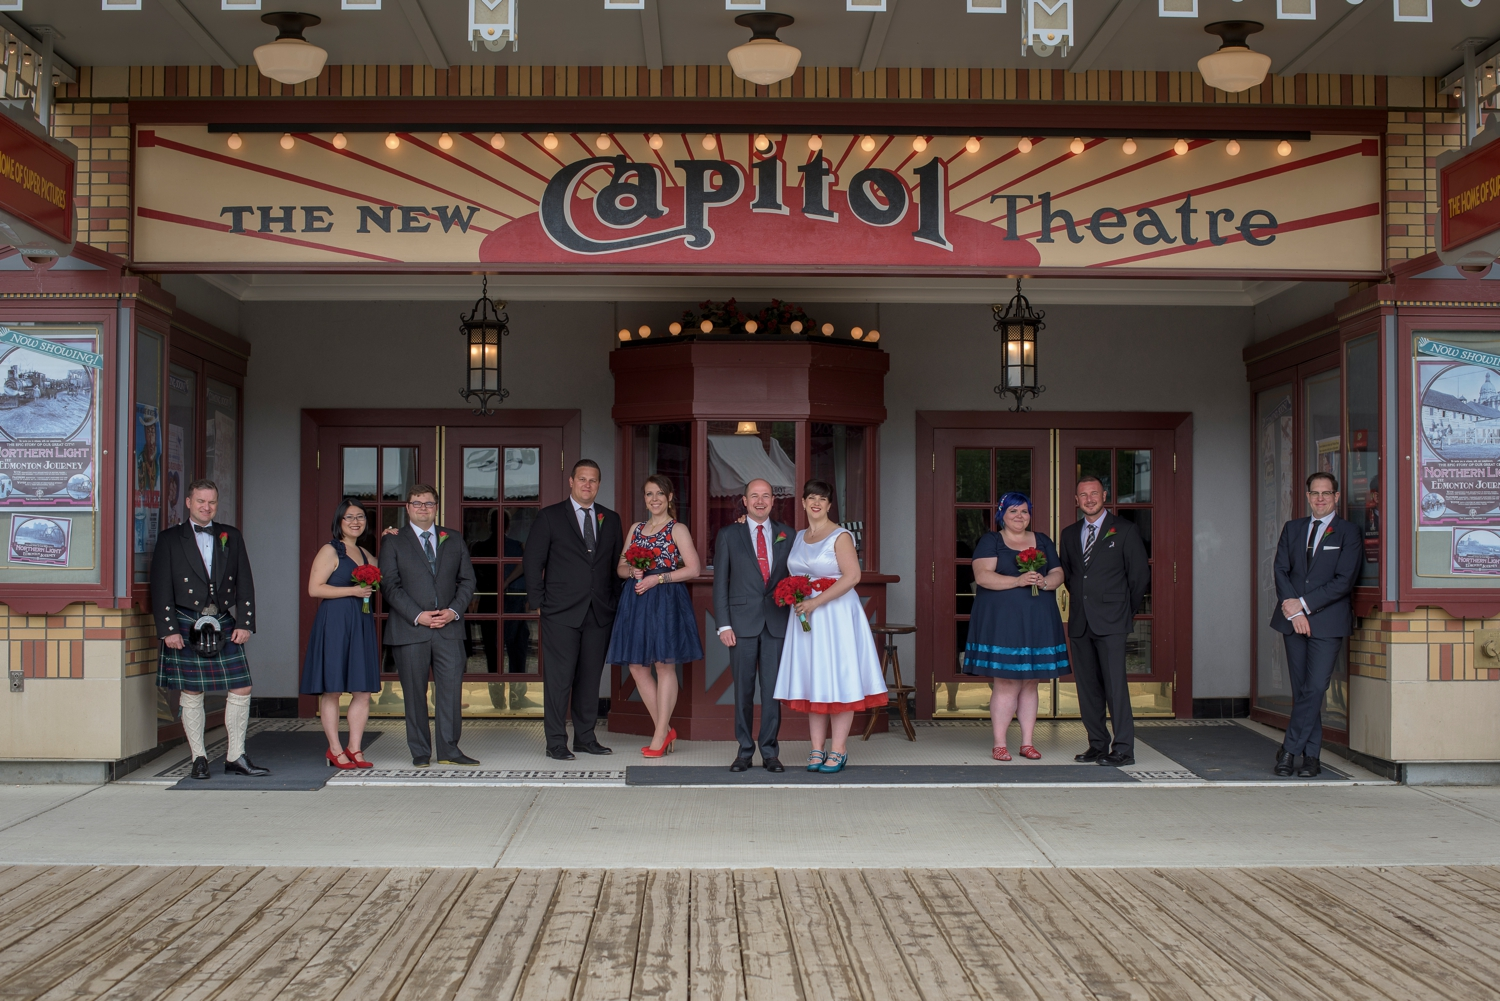 Wedding party in front of the Capital Theatre in Fort Edmonton Park